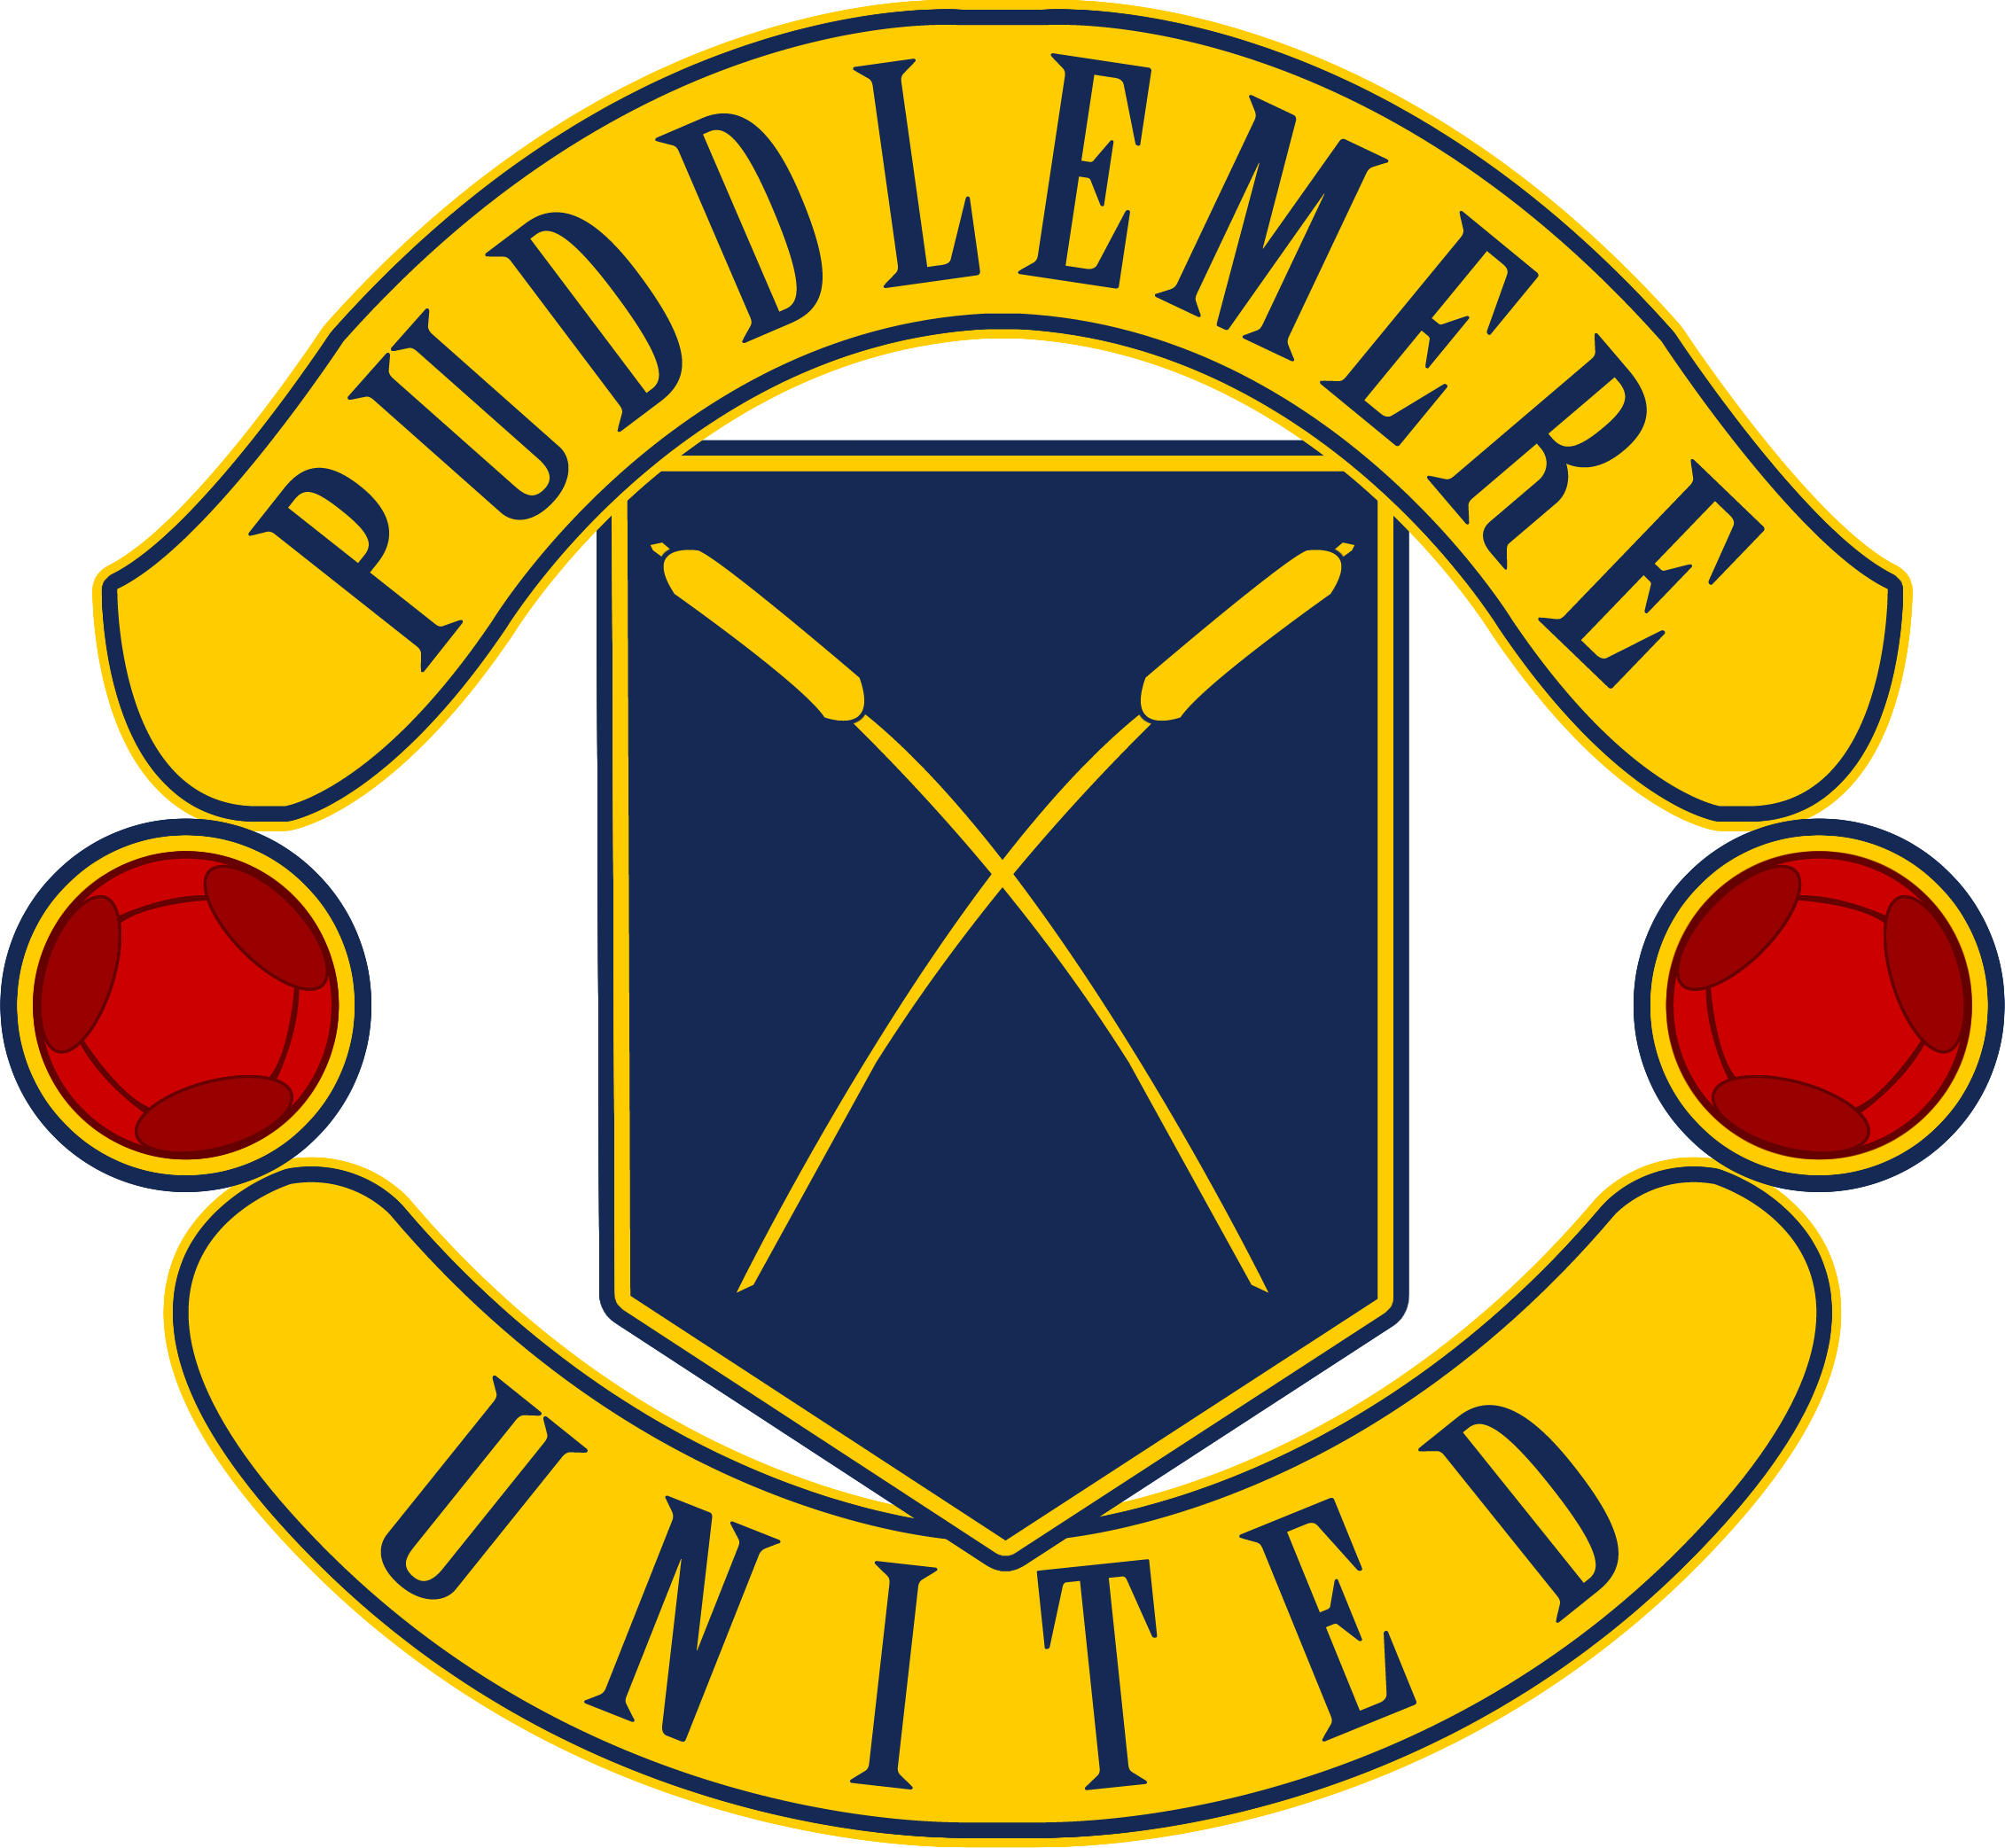 Puddlemere United logo 1